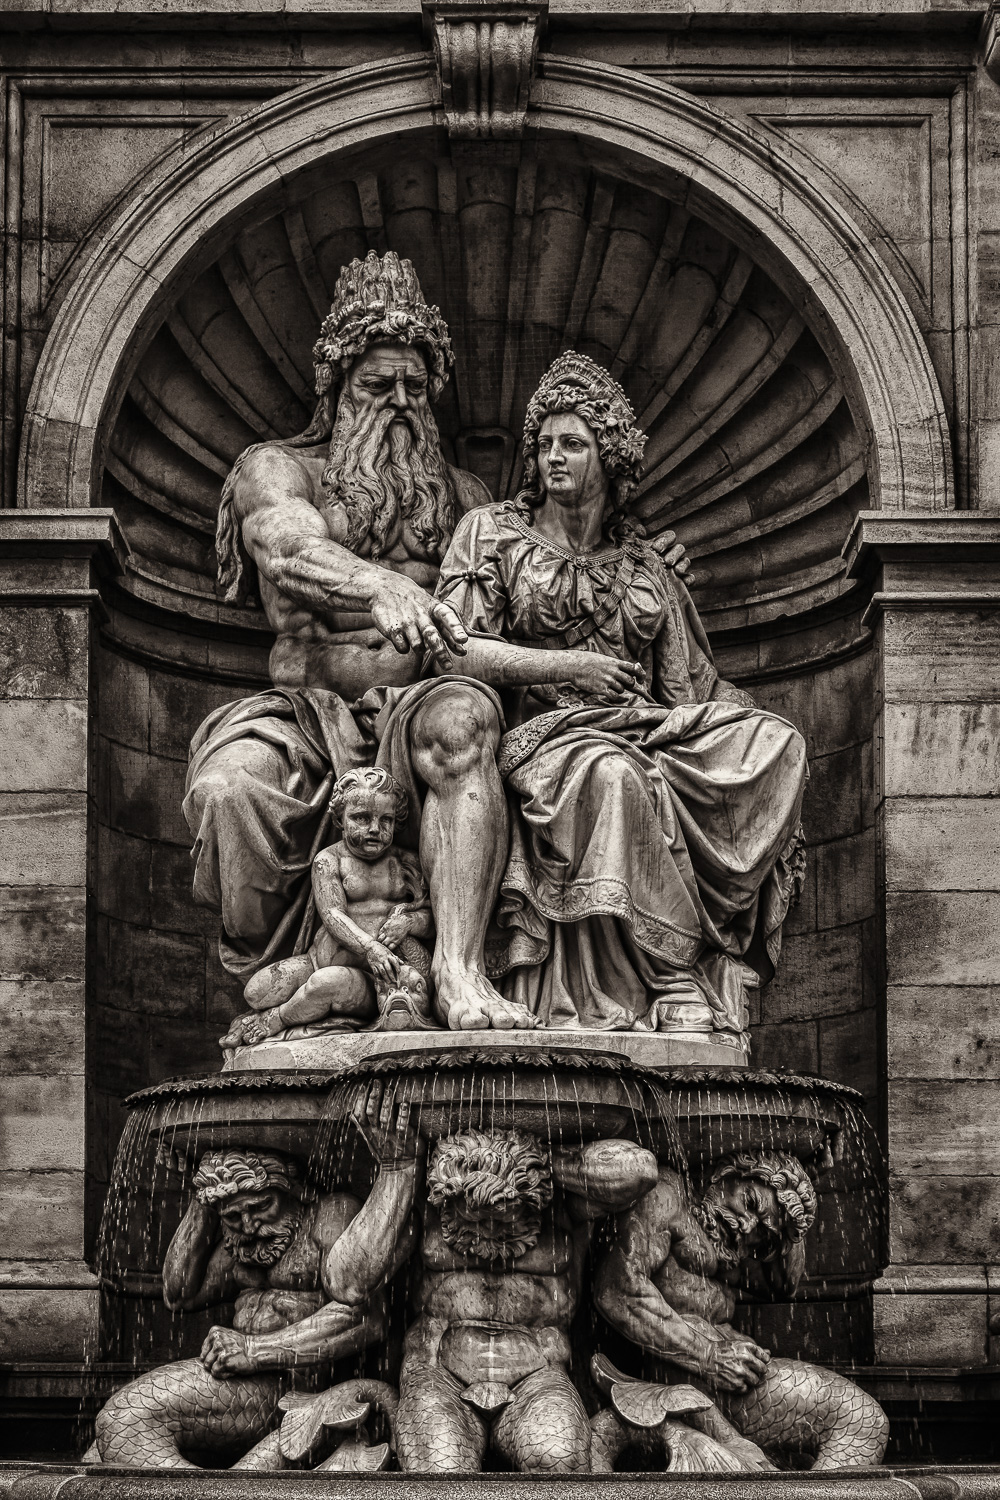 A statue and fountain in the city of Vienna, Austria.